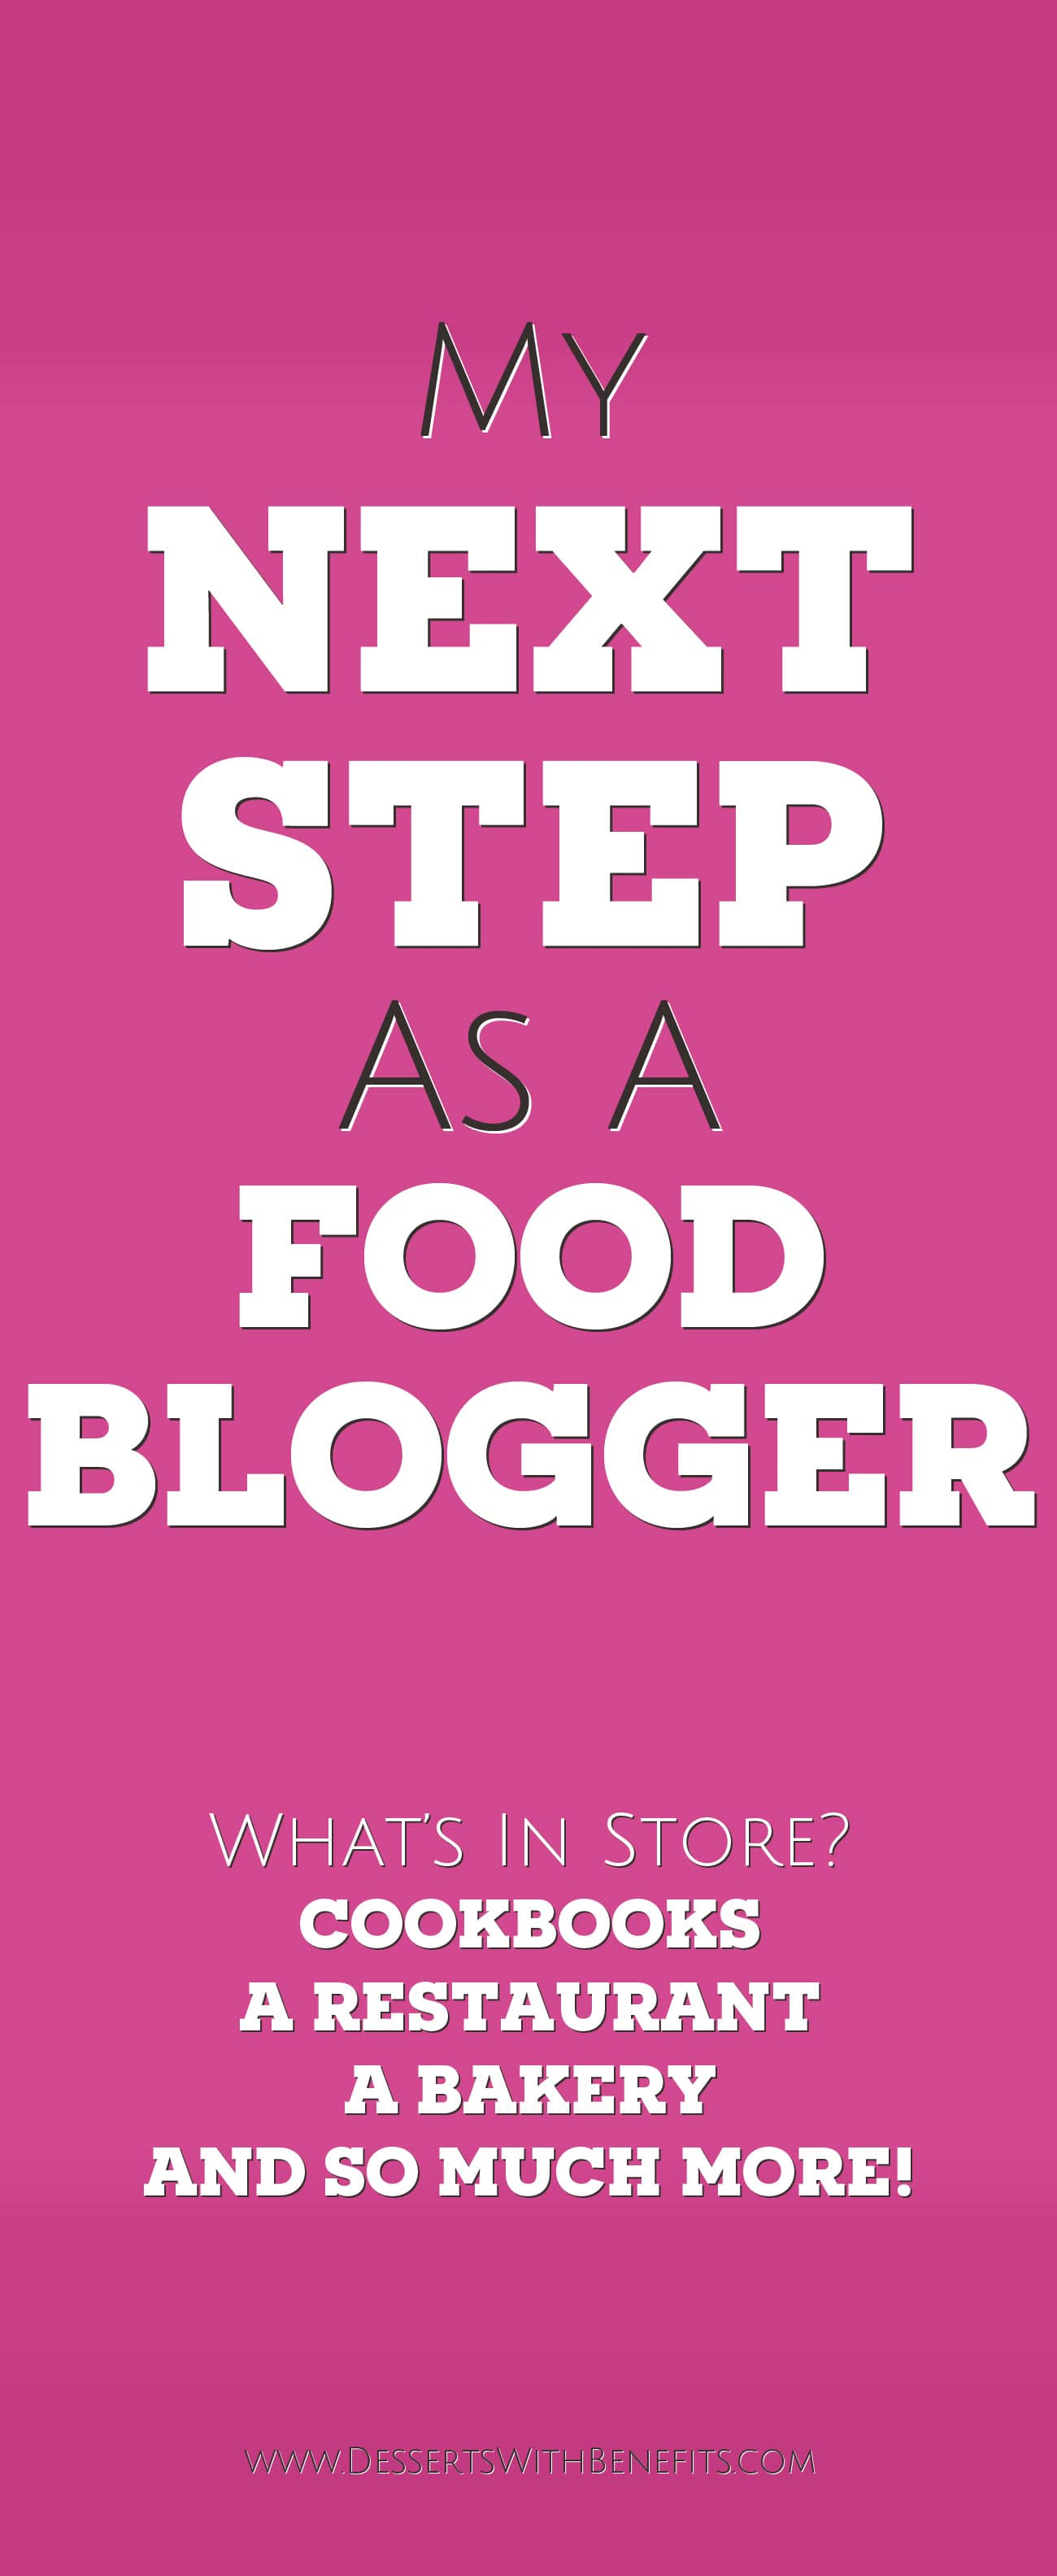 Taking Blogging to the NEXT STEP -- Blogger to Bakery Owner? Jessica Stier of the Desserts With Benefits Blog